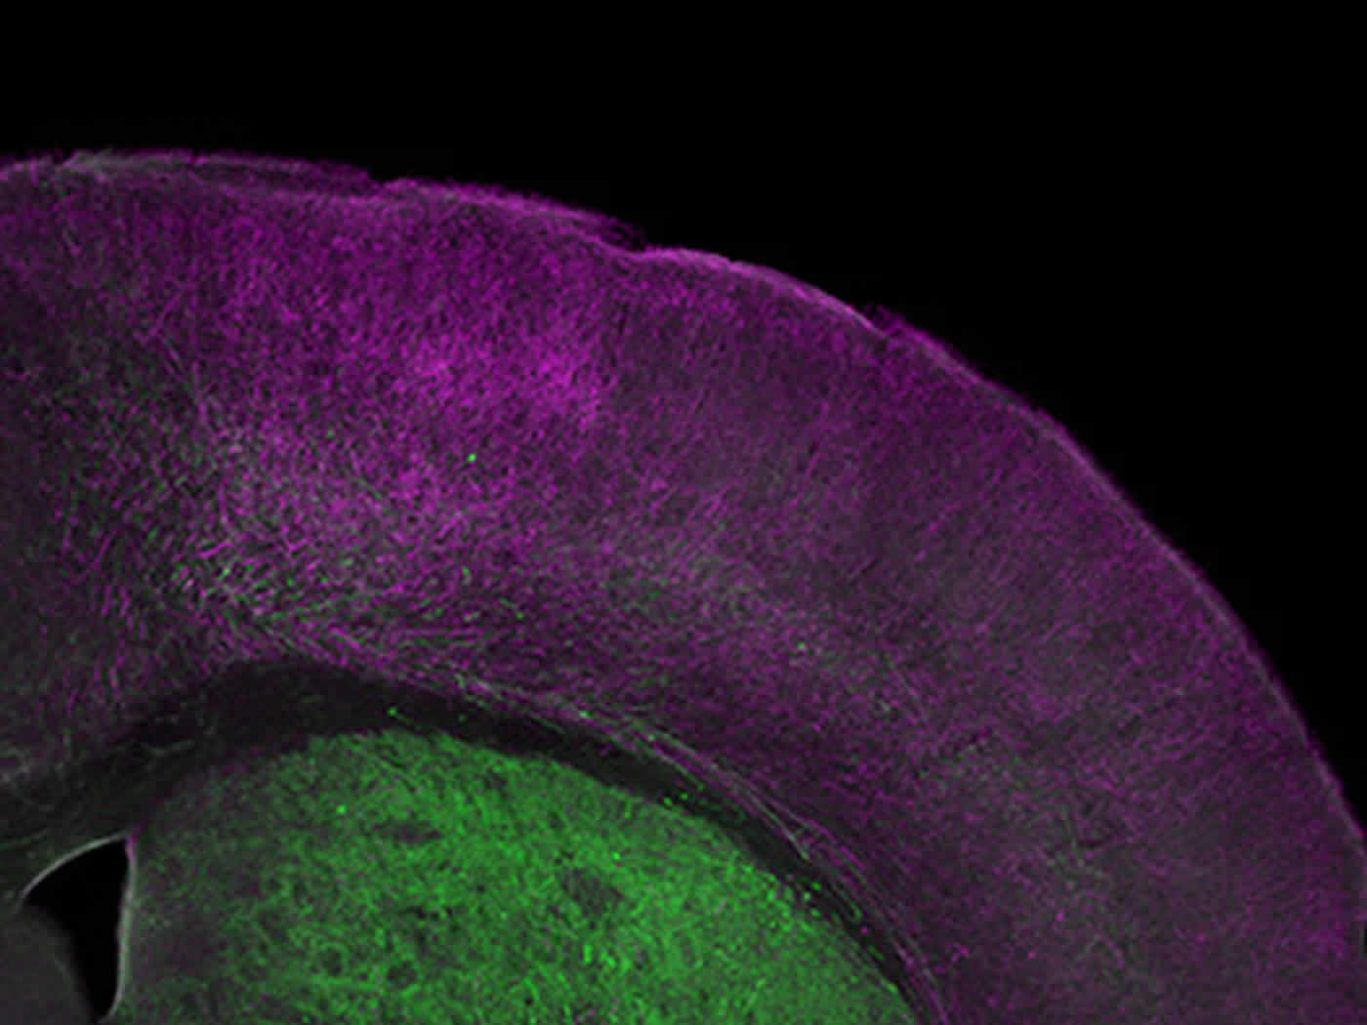 This image shows a microscopic view of the frontal cortex of a mouse.